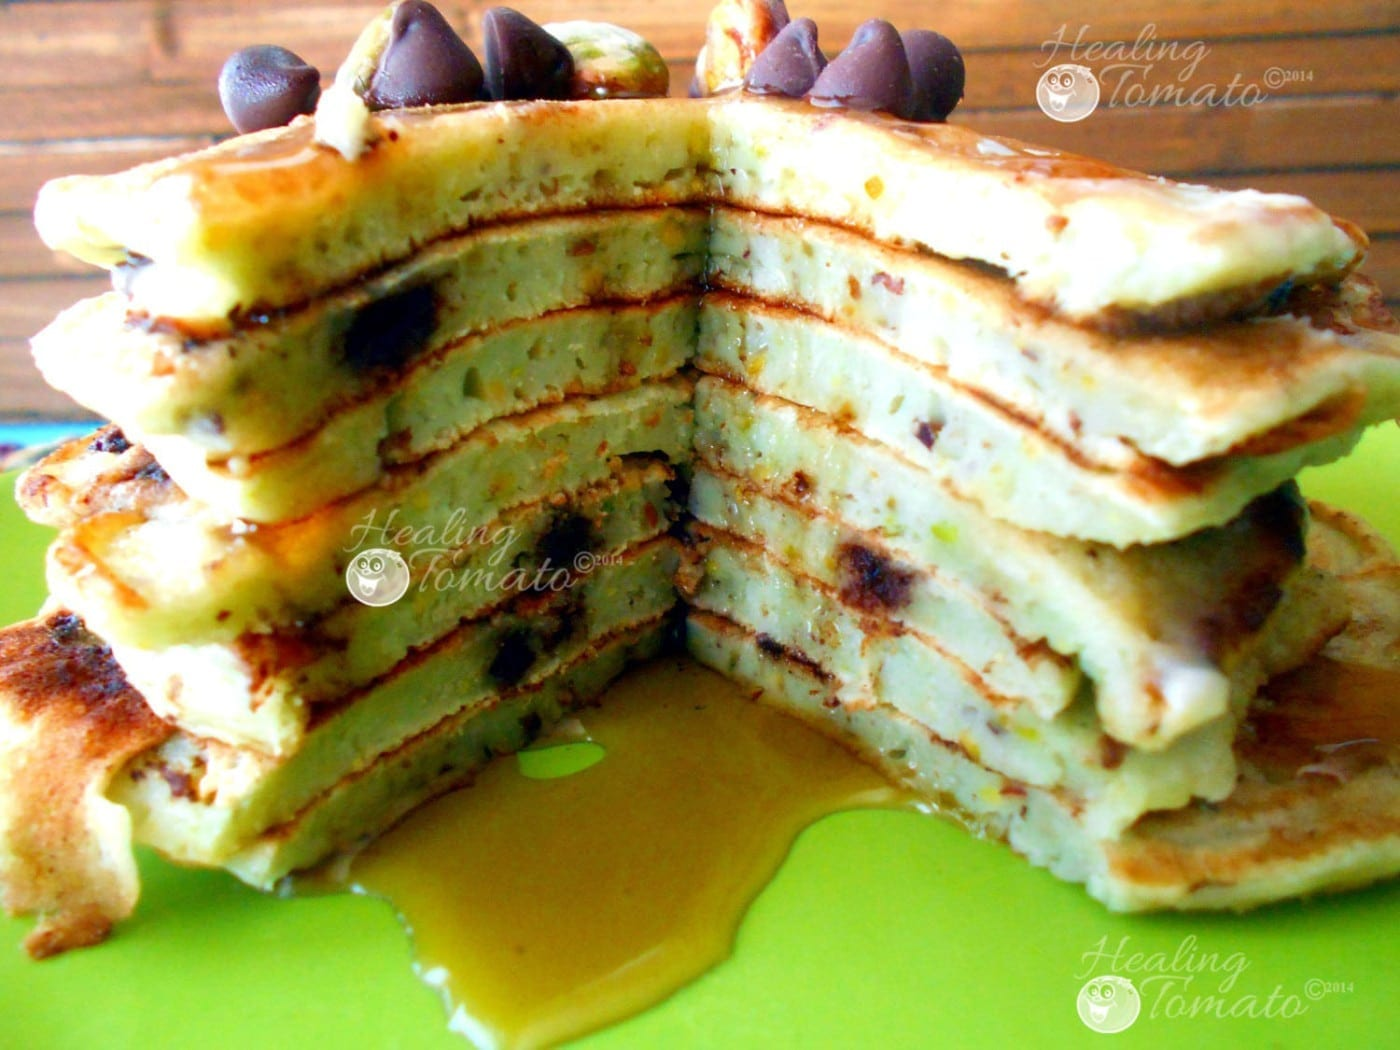 Closeup view of a section of a stack of vegan chocolate chip pancakes